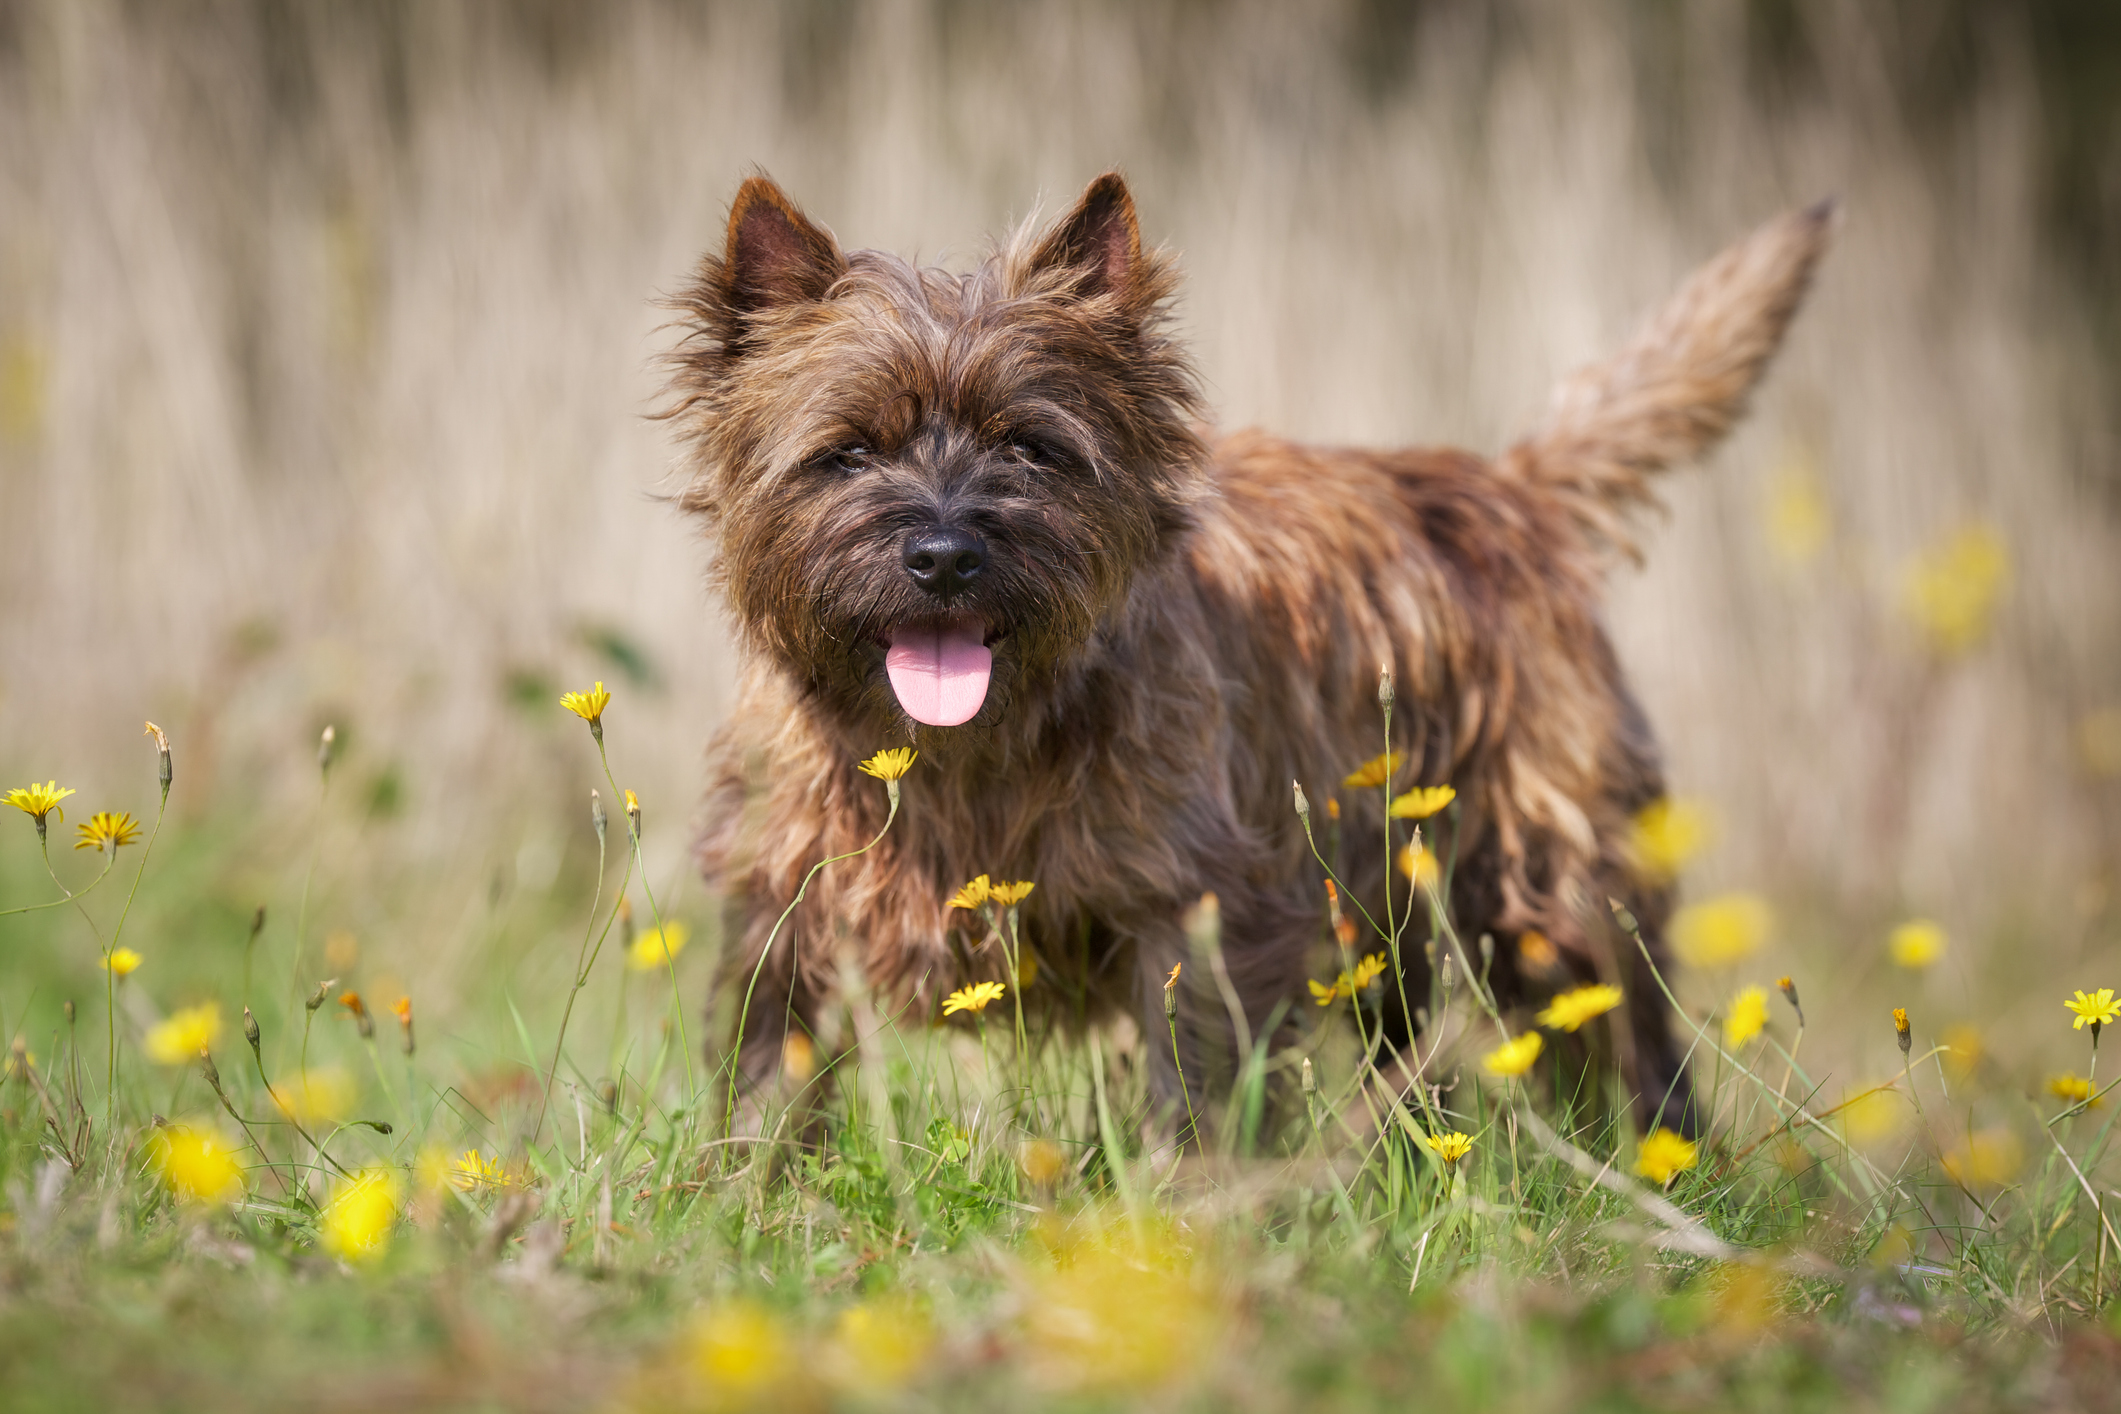 Enid's Cairn Terrier was attacked by a Staffie